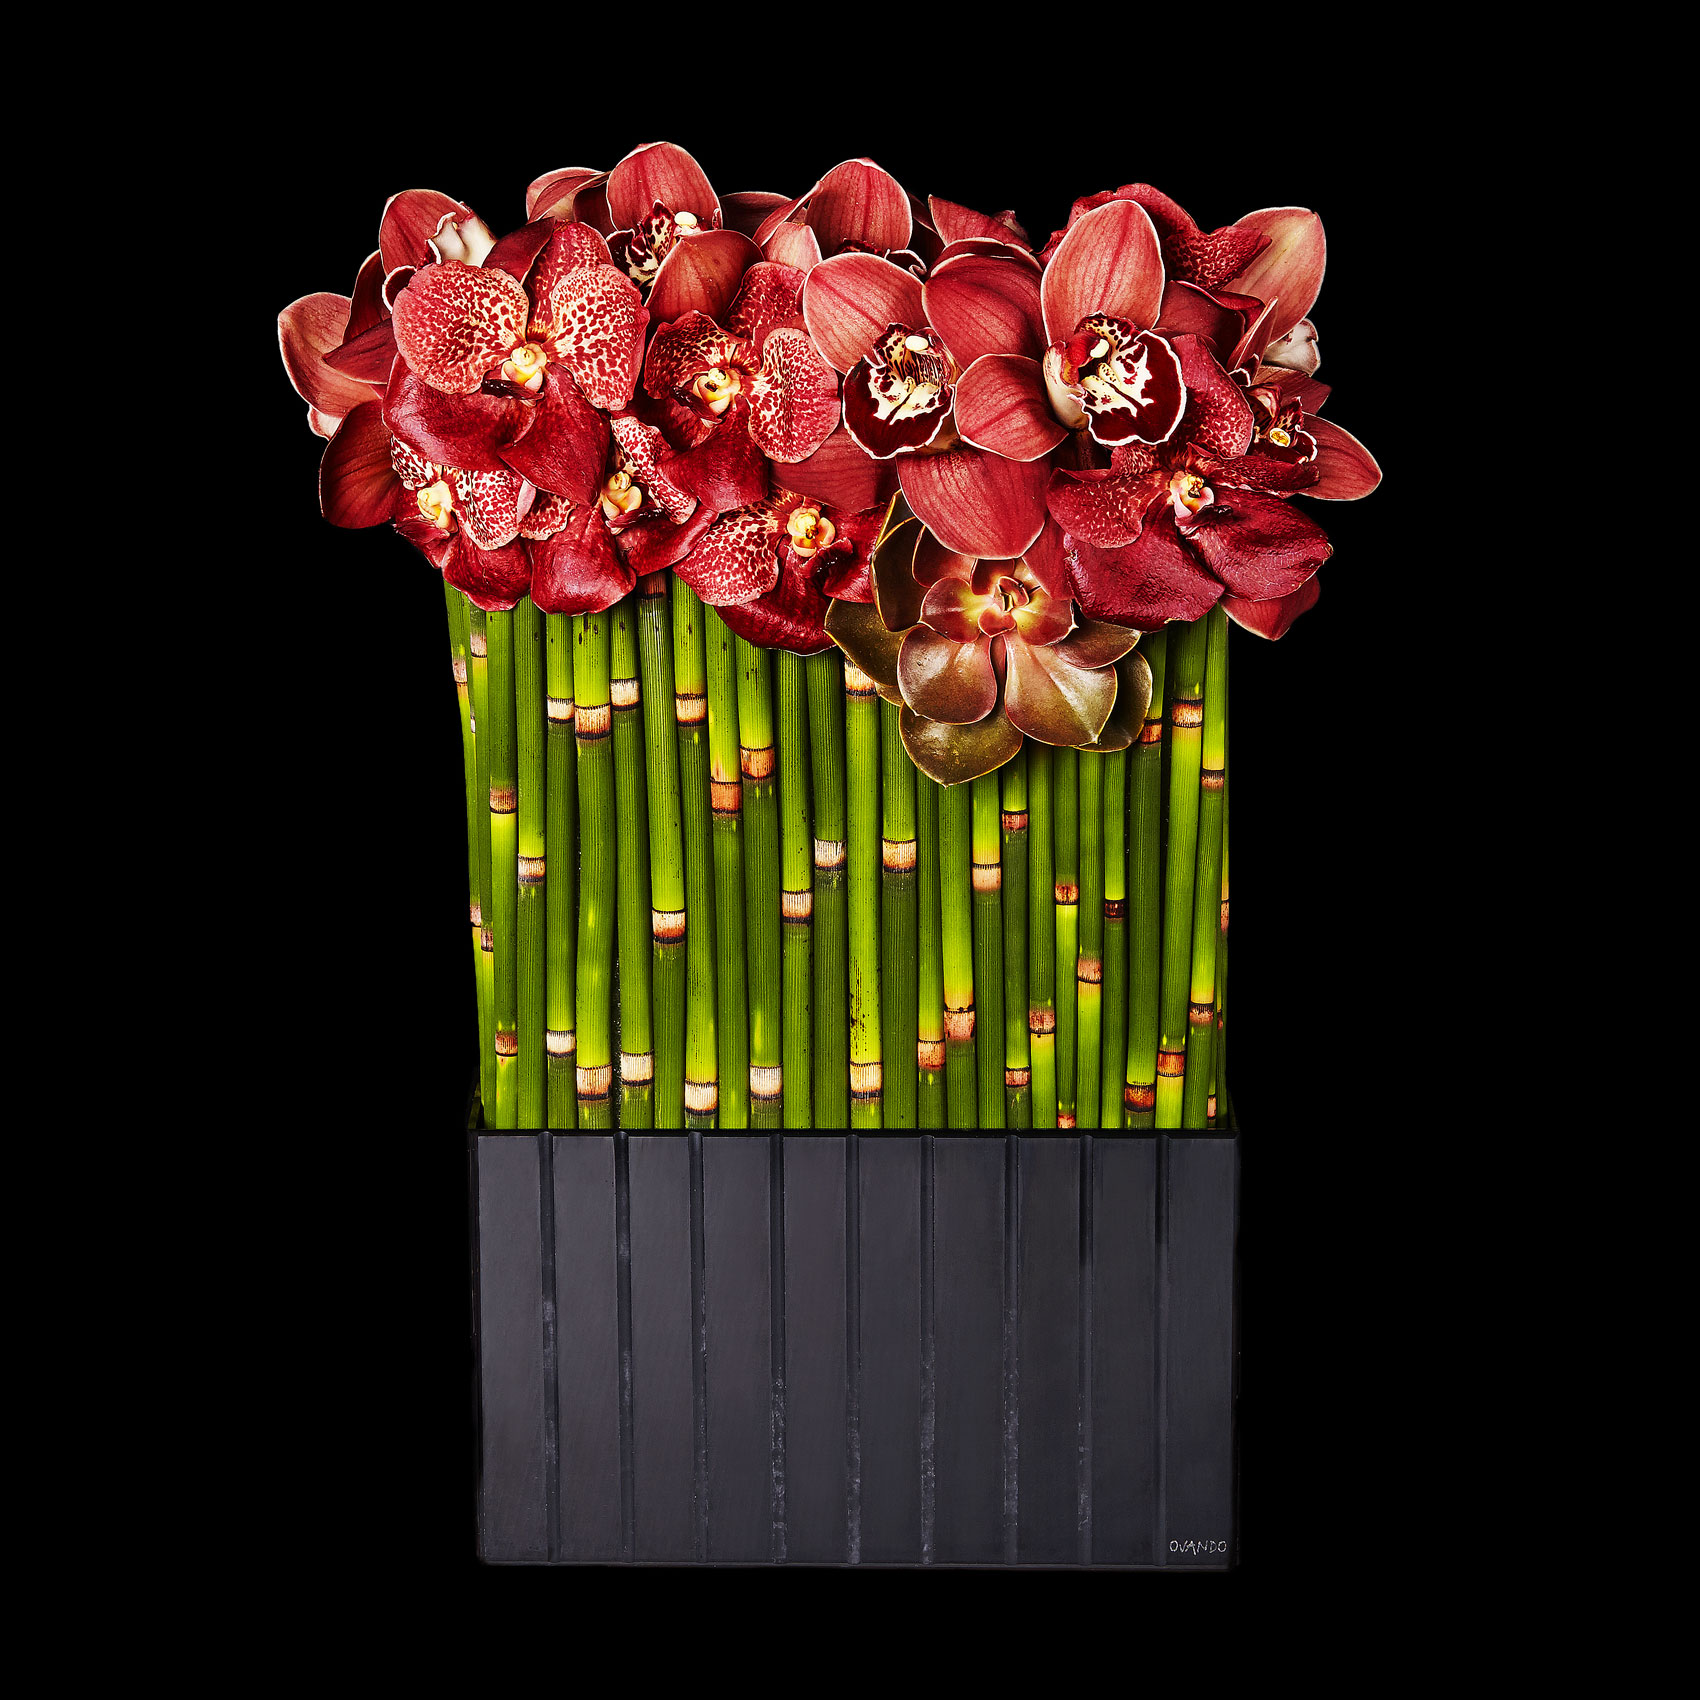 red-orchids_bamboo_floral_arrangement_valentines-day_ovando_ty-mecham